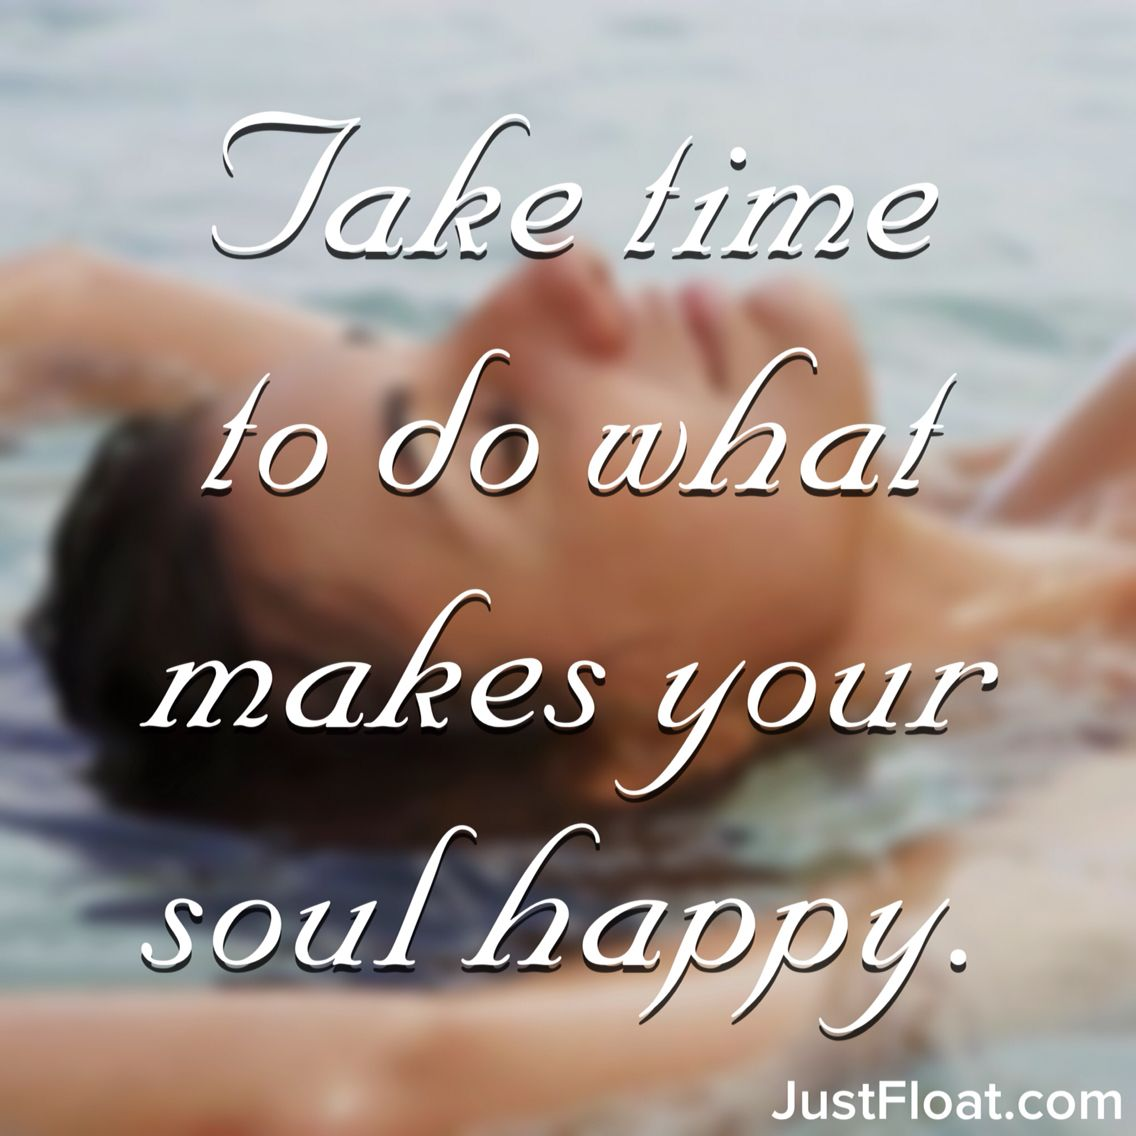 Take time to do what makes your soul happy.  Inspirational quote for mind, body balance.